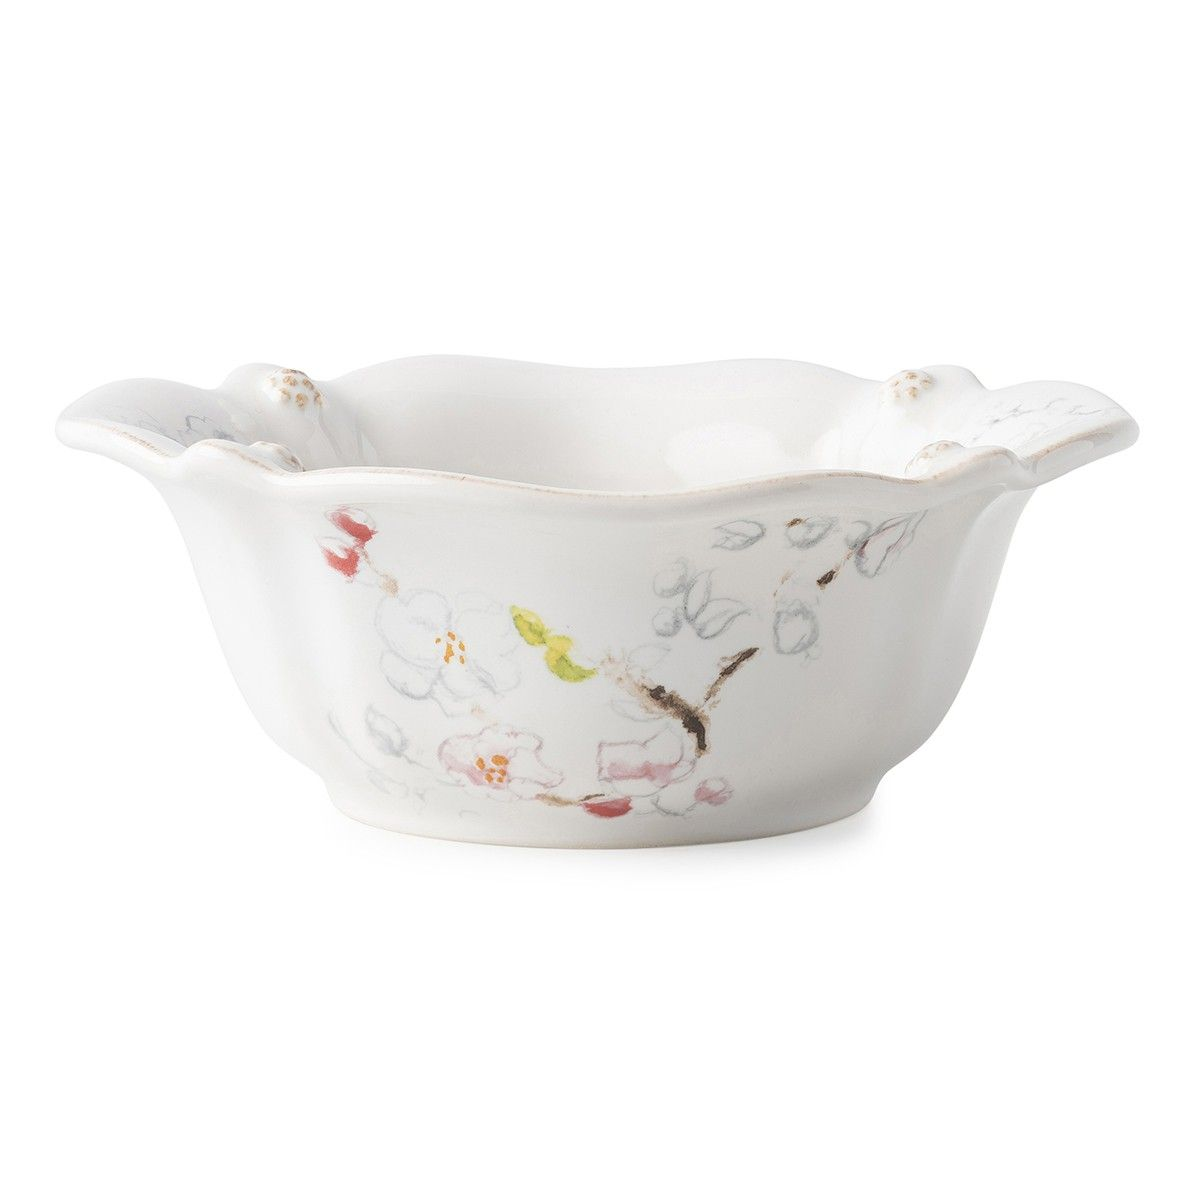 B&T Floral Sketch Cherry Blossom Cereal/Ice Cream Bowl